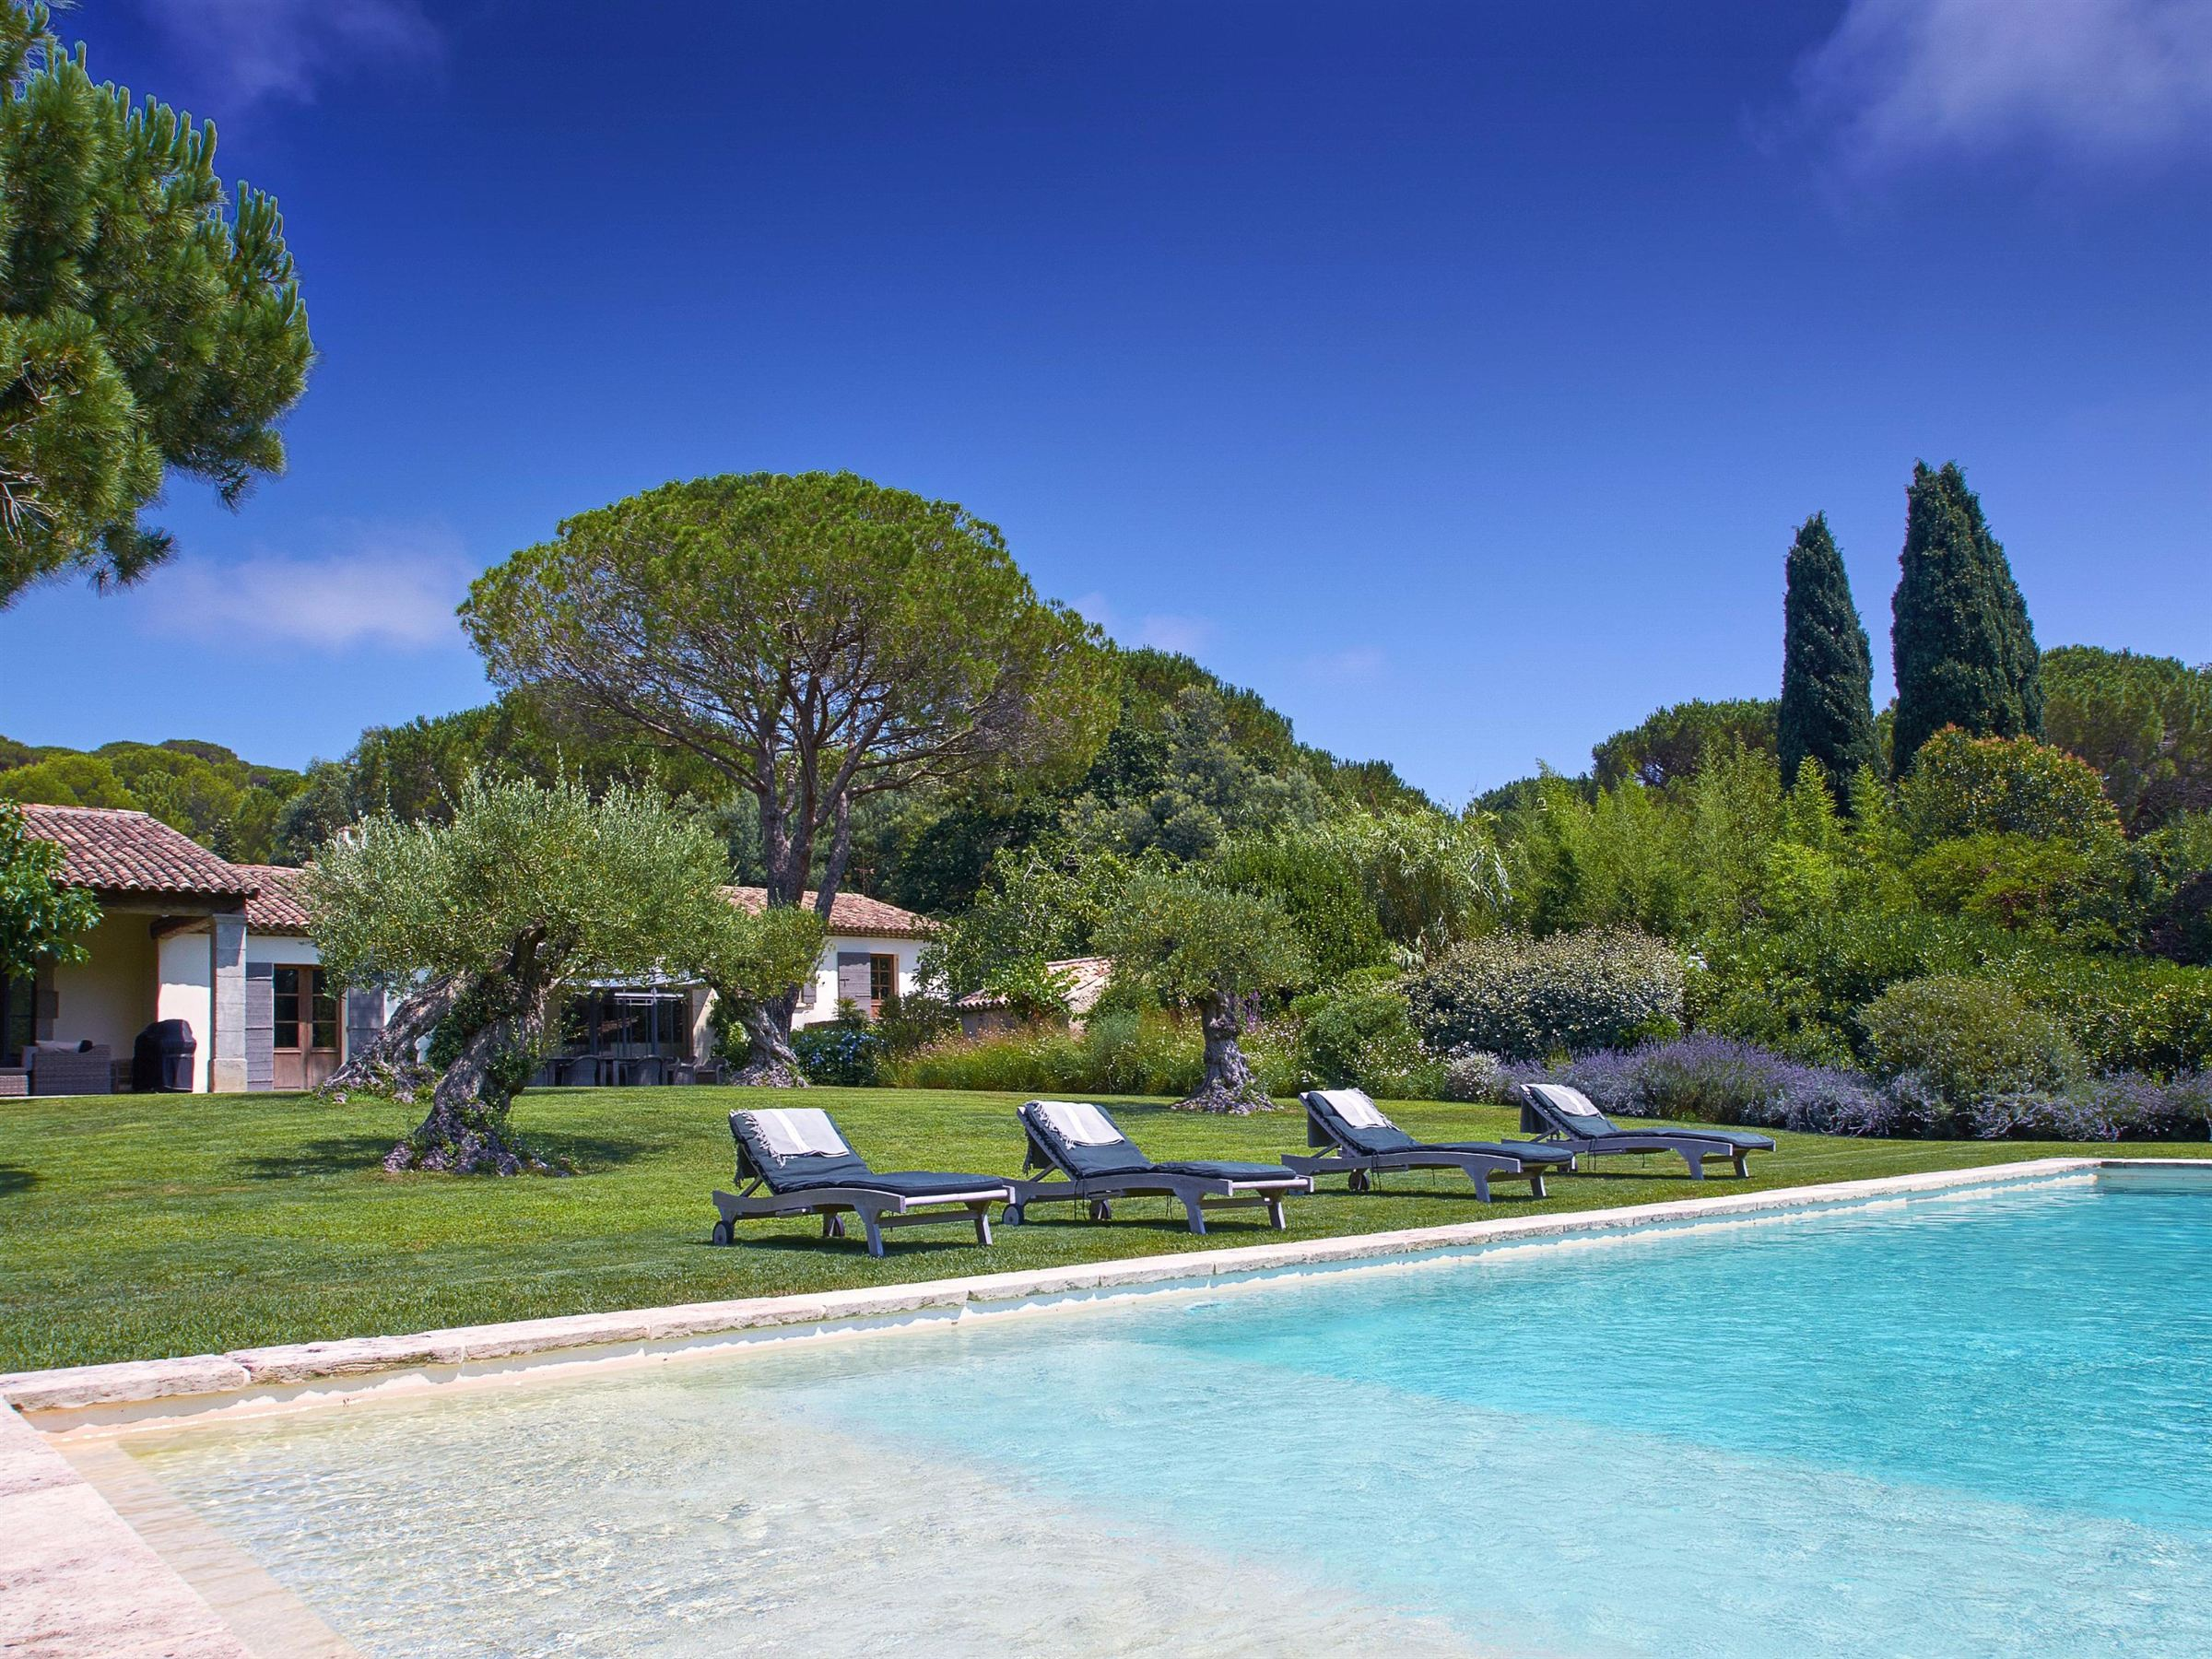 Single Family Home for Sale at Authentic Mediterranean estate Saint Tropez, Provence-Alpes-Cote D'Azur, 83990 France